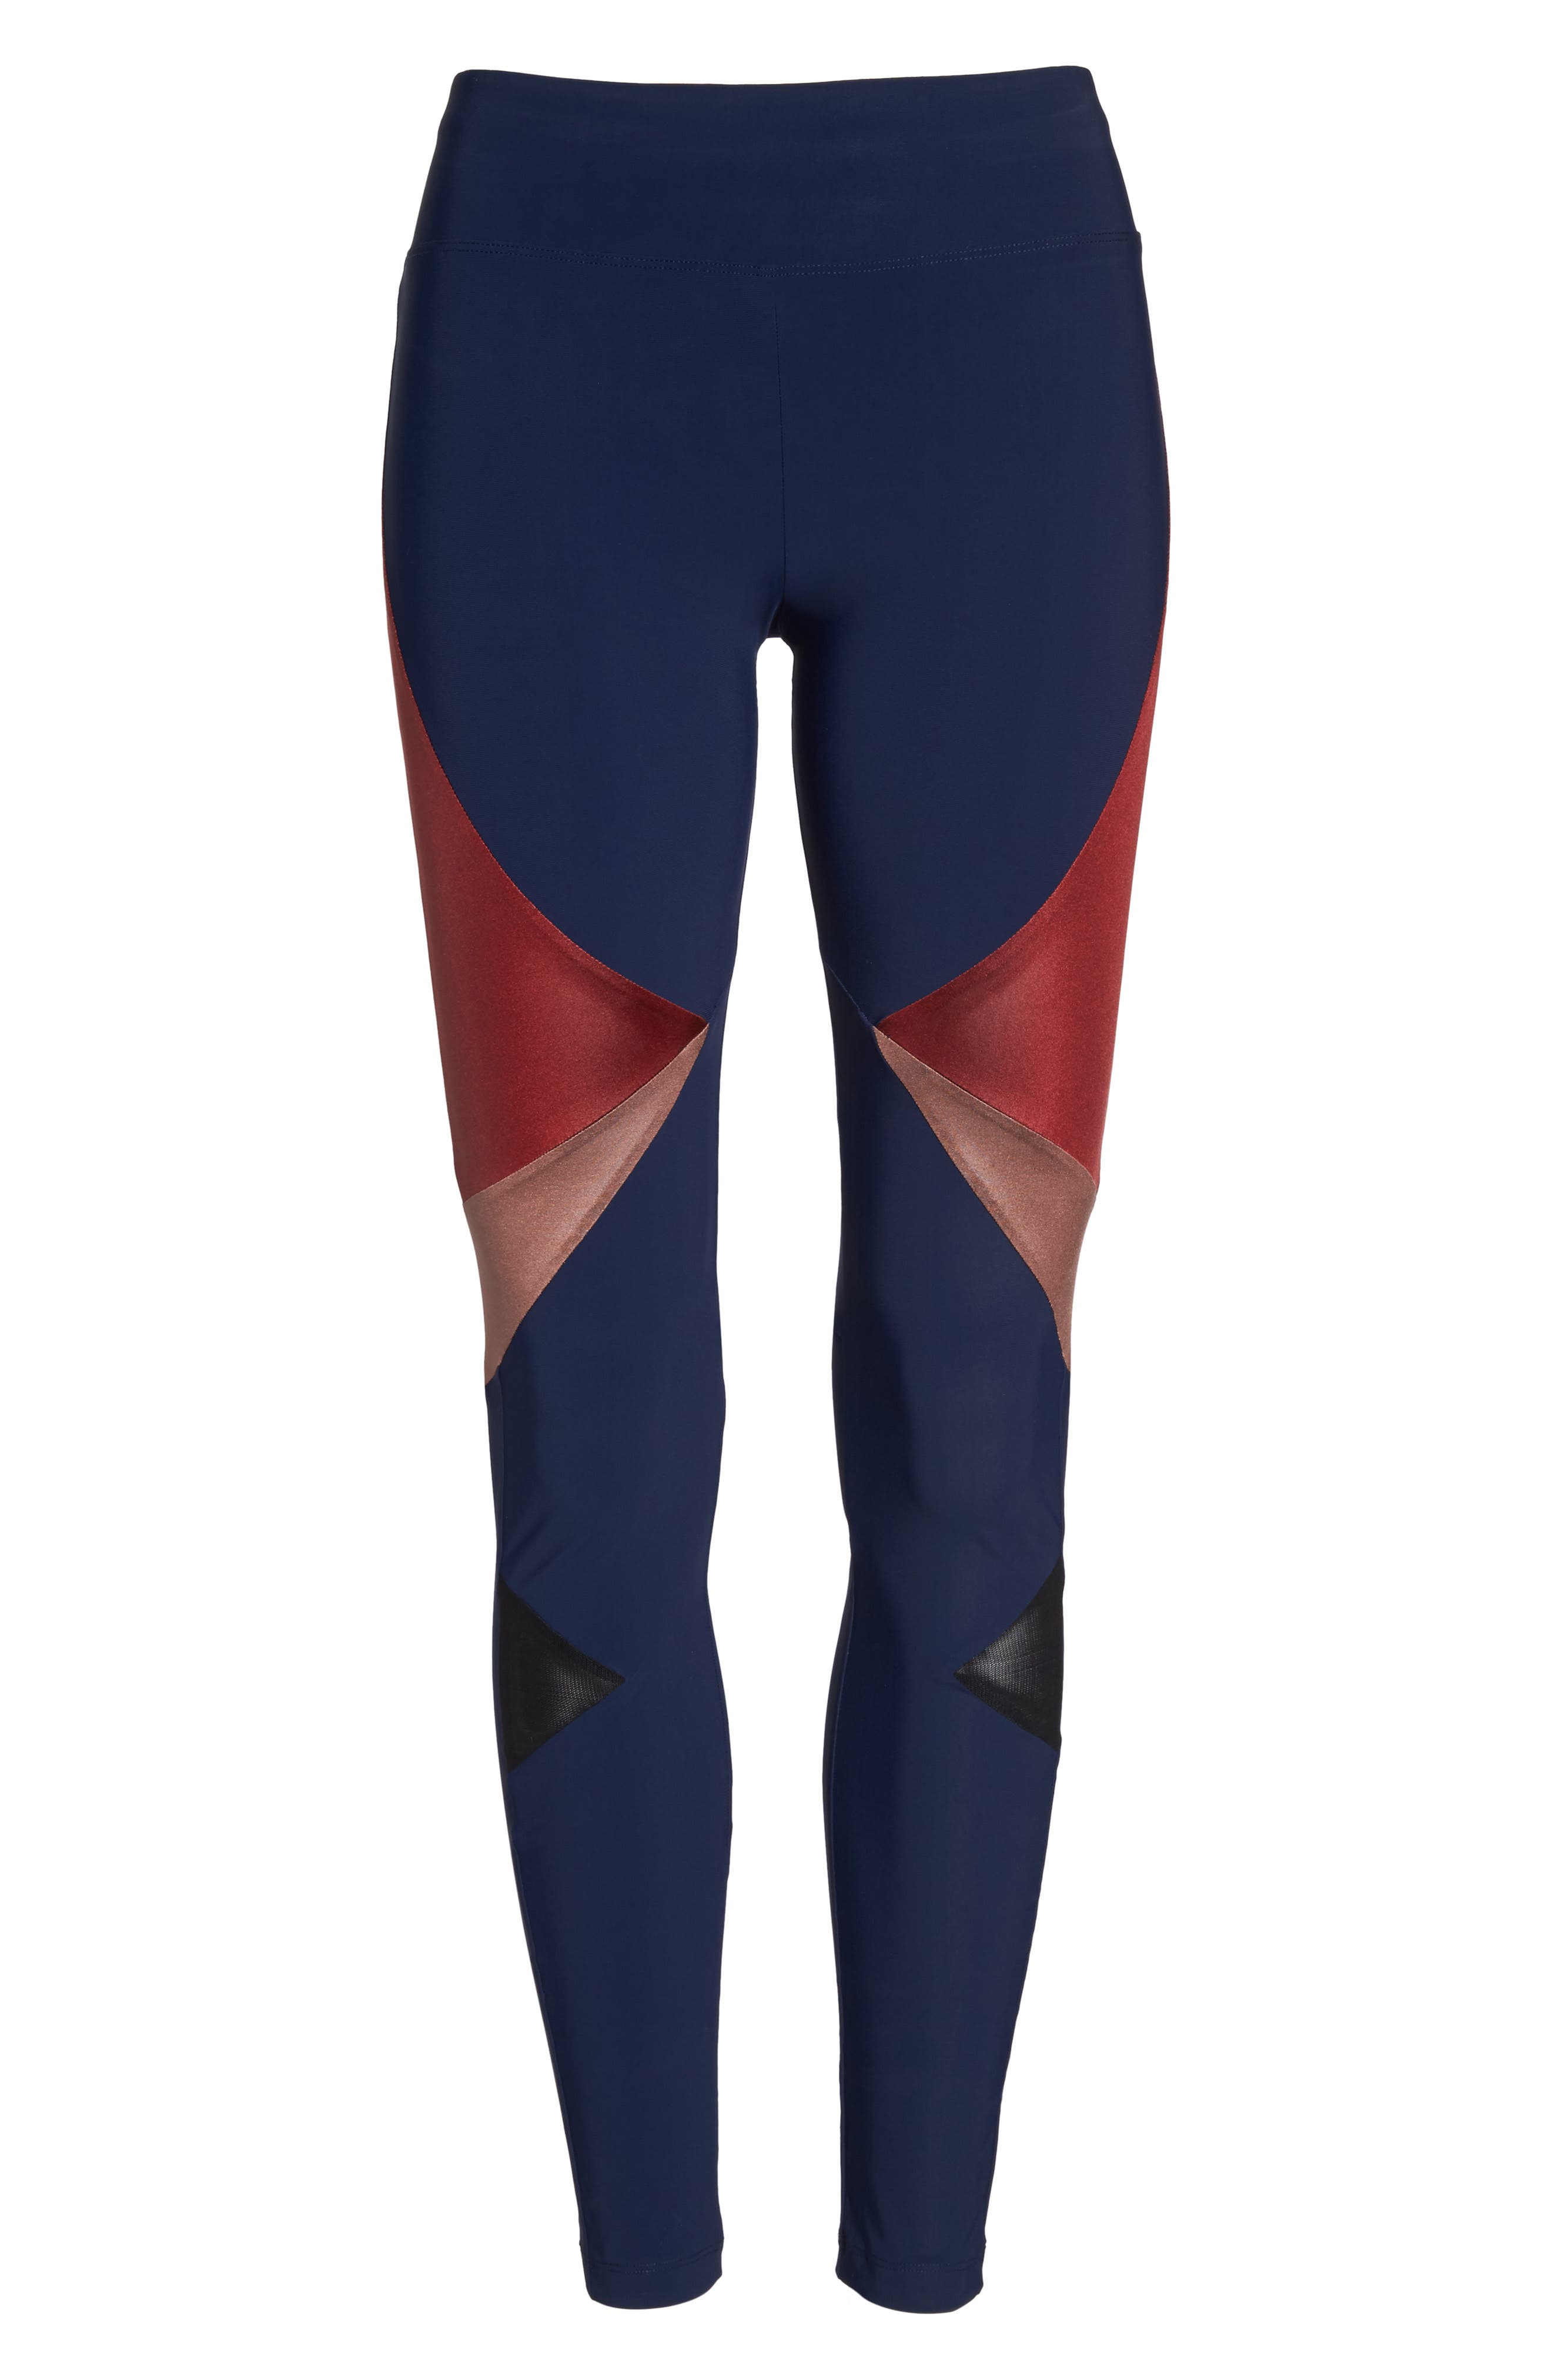 BoomBoom Athletica Compression Leggings,                             Alternate thumbnail 7, color,                             Navy/Oxblood/Rose Gold